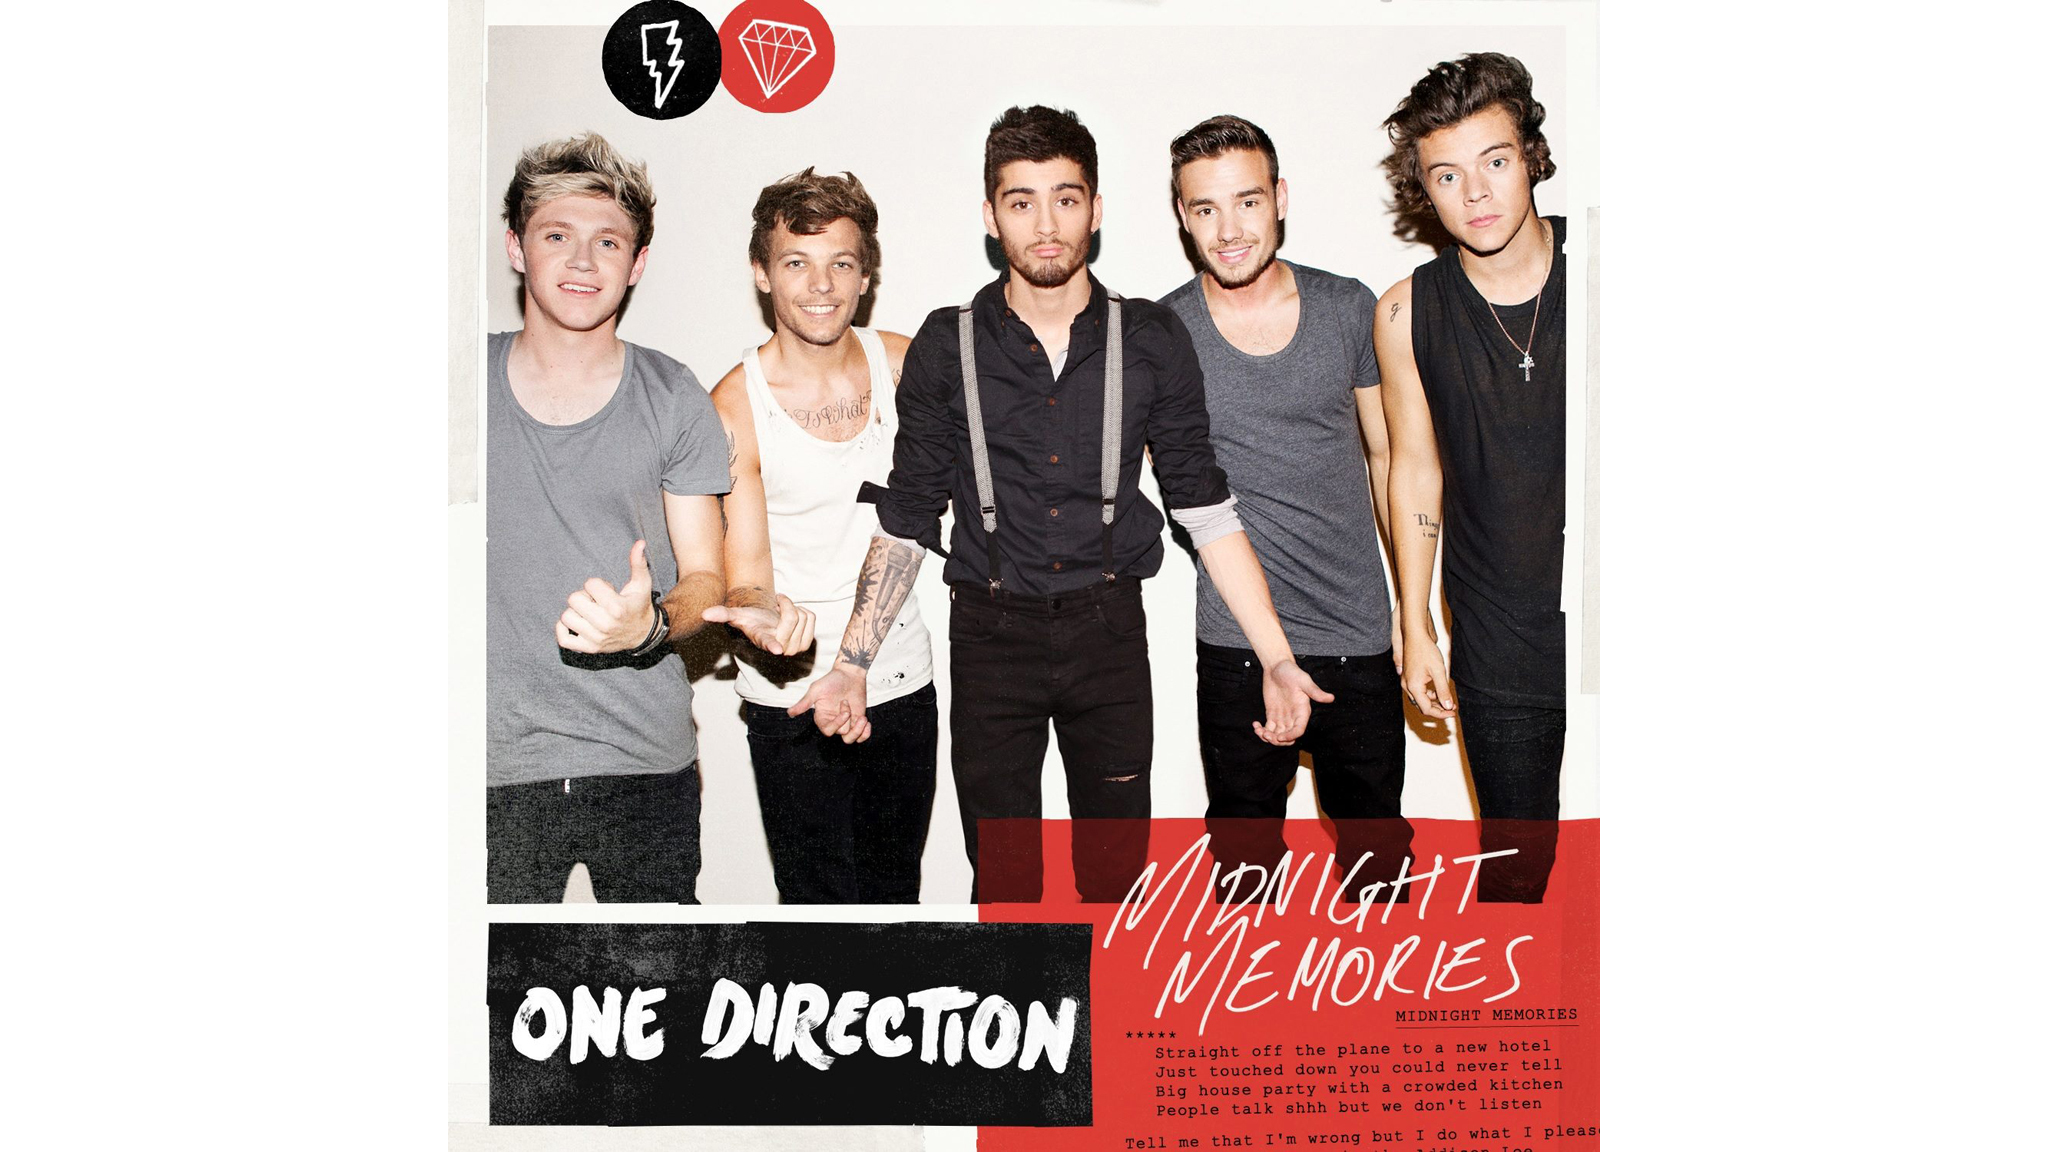 One direction midnight memories mp3 free download songslover by.